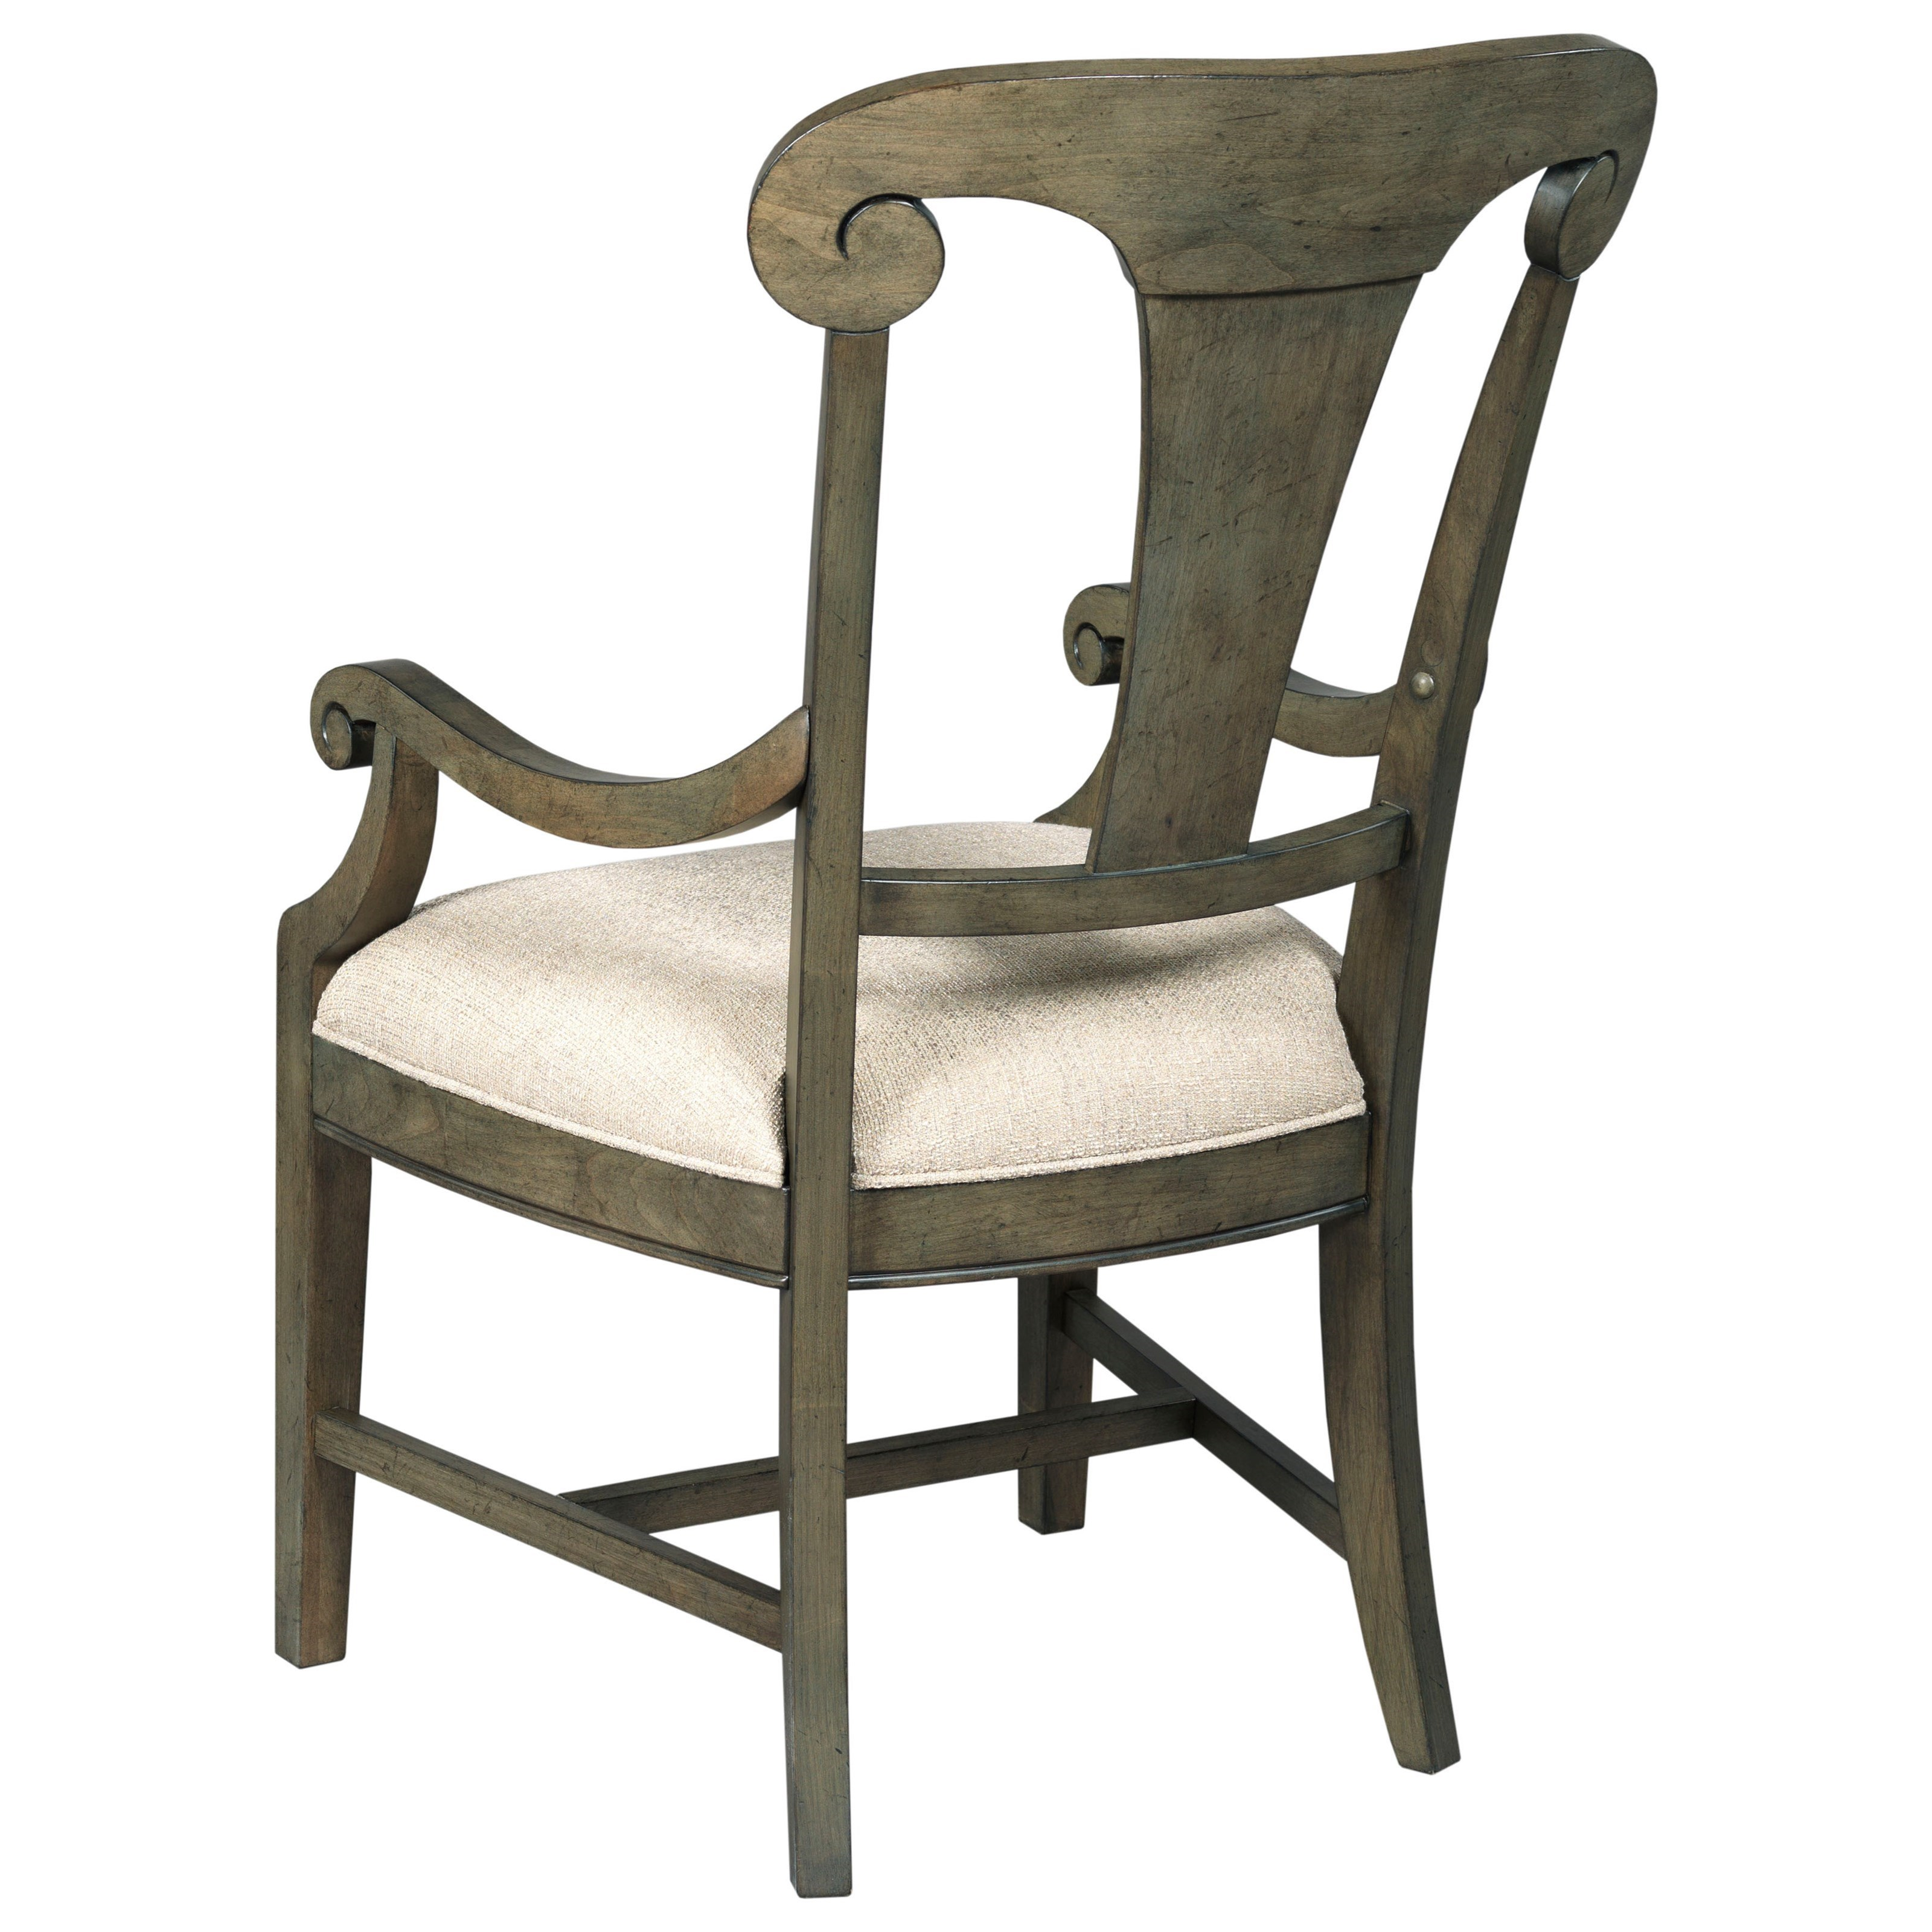 Kincaid Furniture Greyson Fulton Splat Back Arm Chair With Upholstered Seat Jacksonville